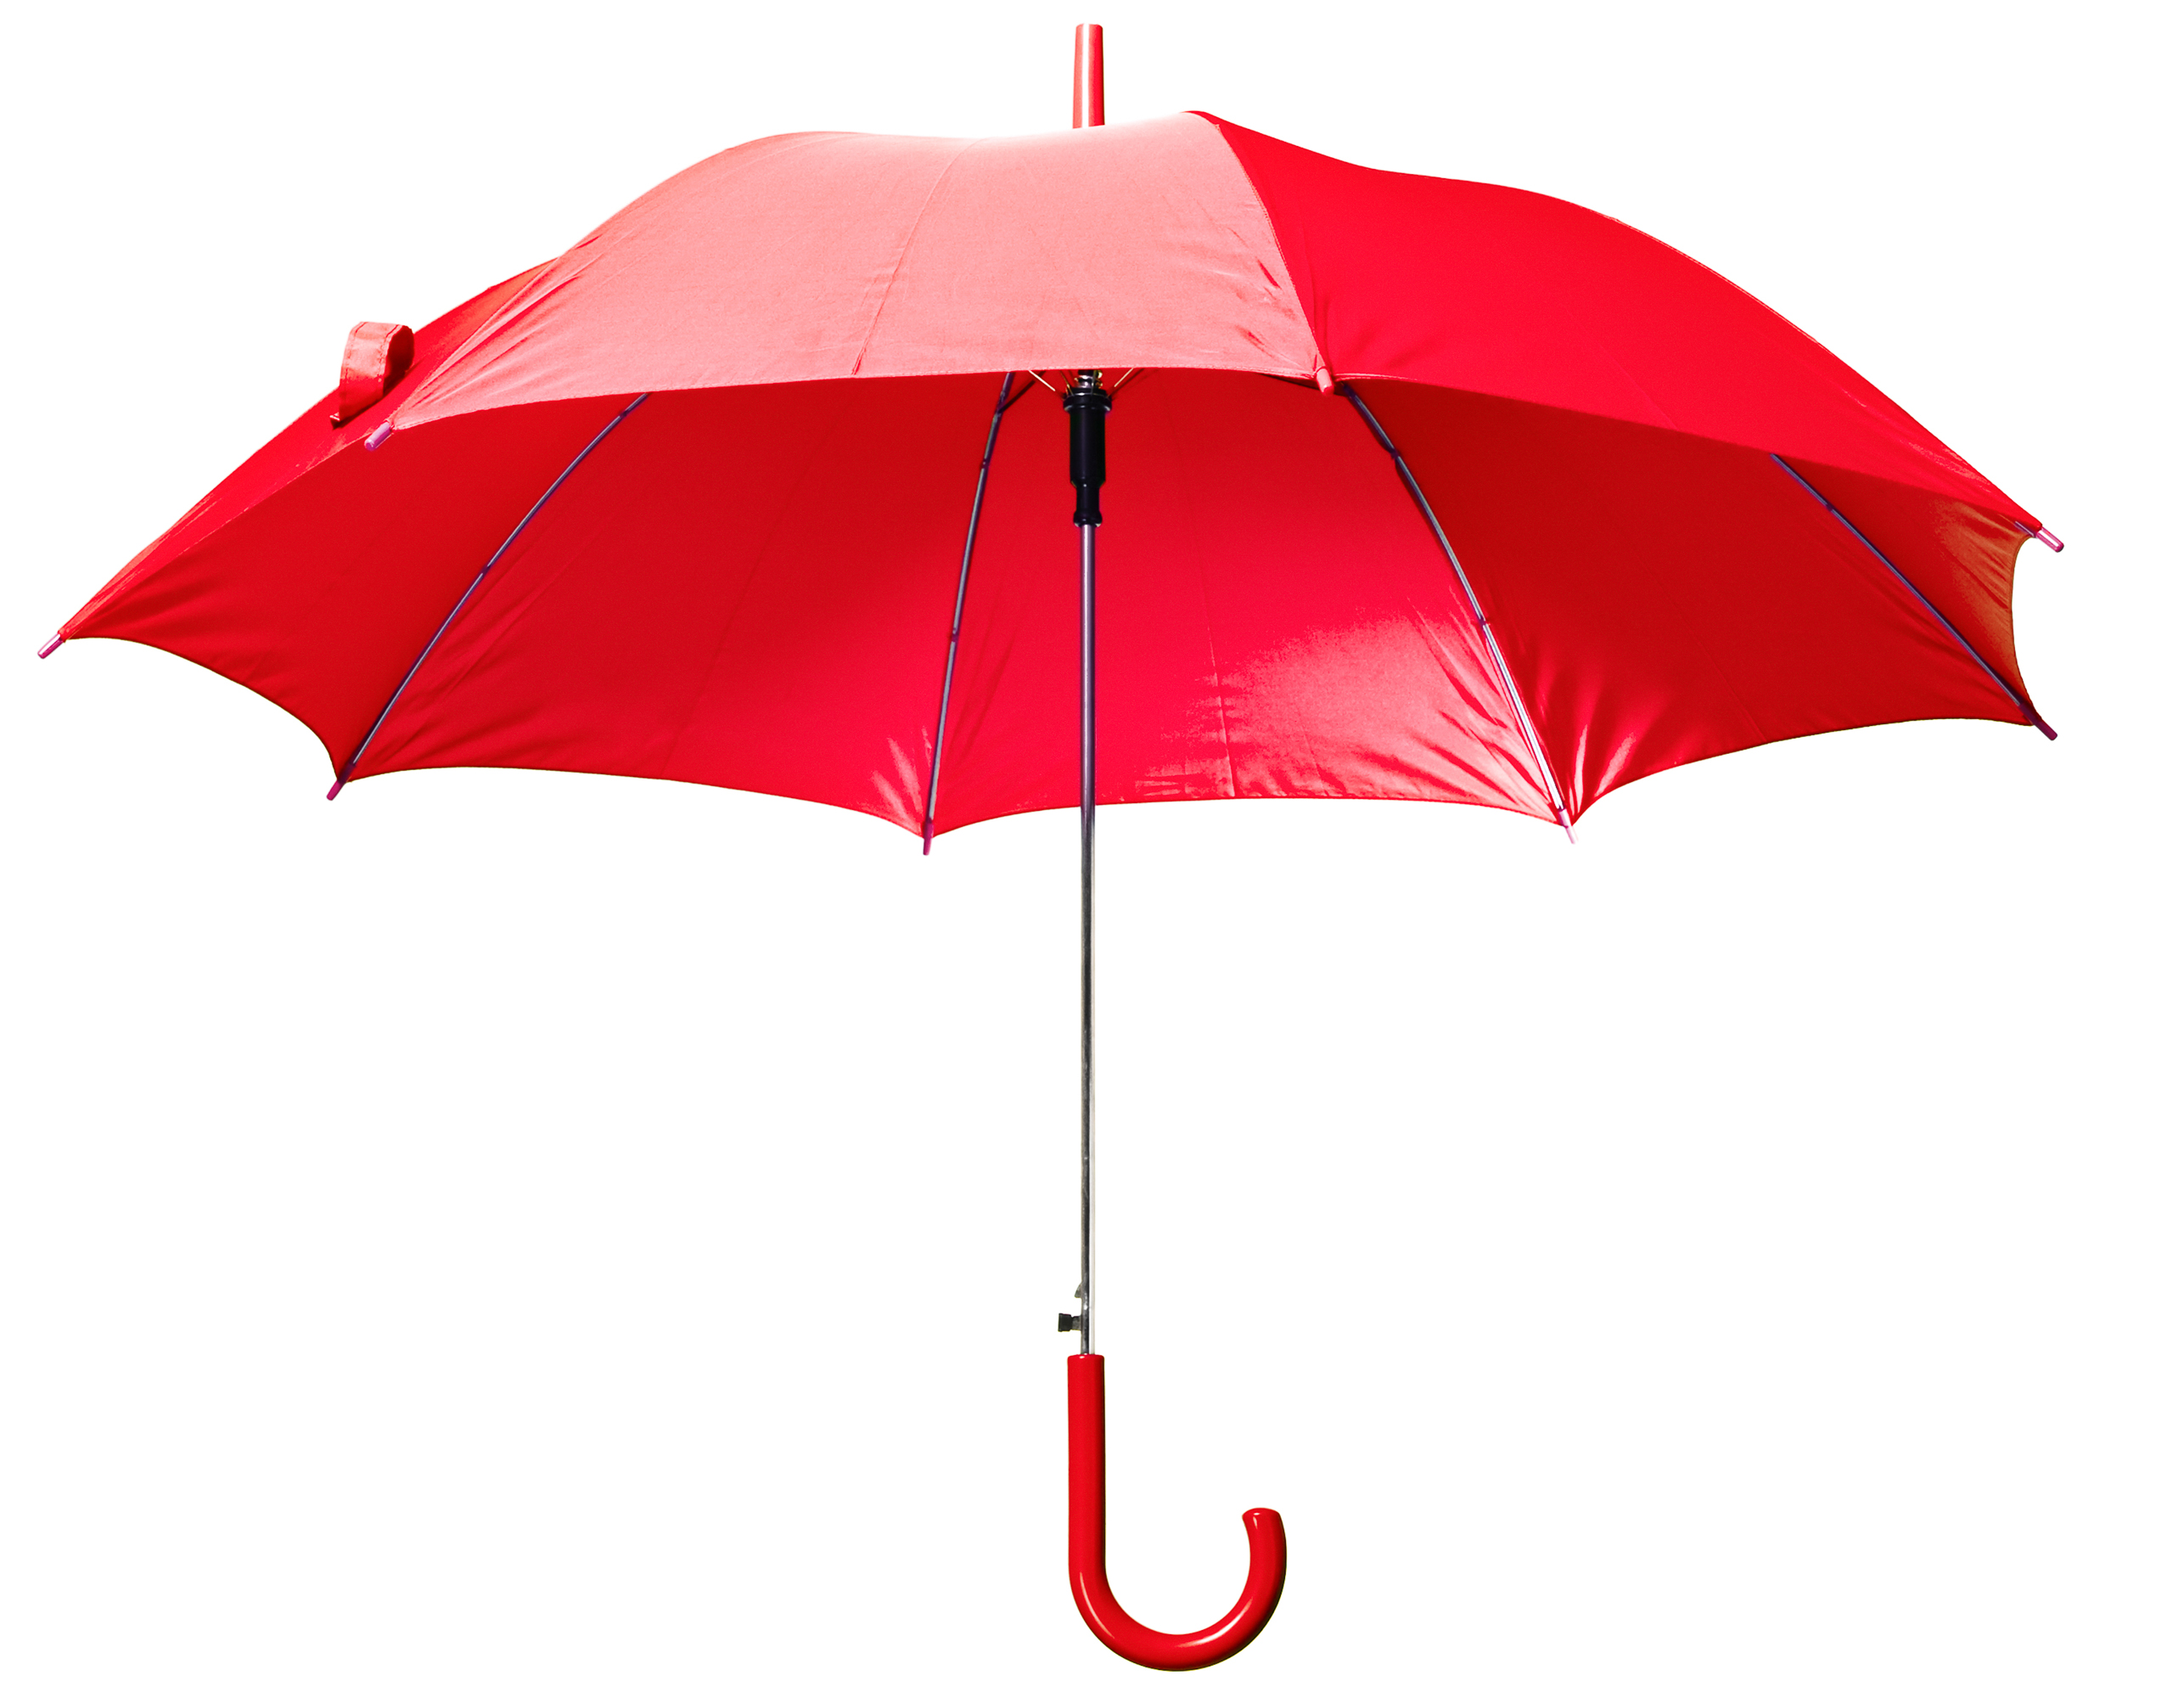 Red Open Umbrella, Accessory, Security, Protection, Protective, HQ Photo